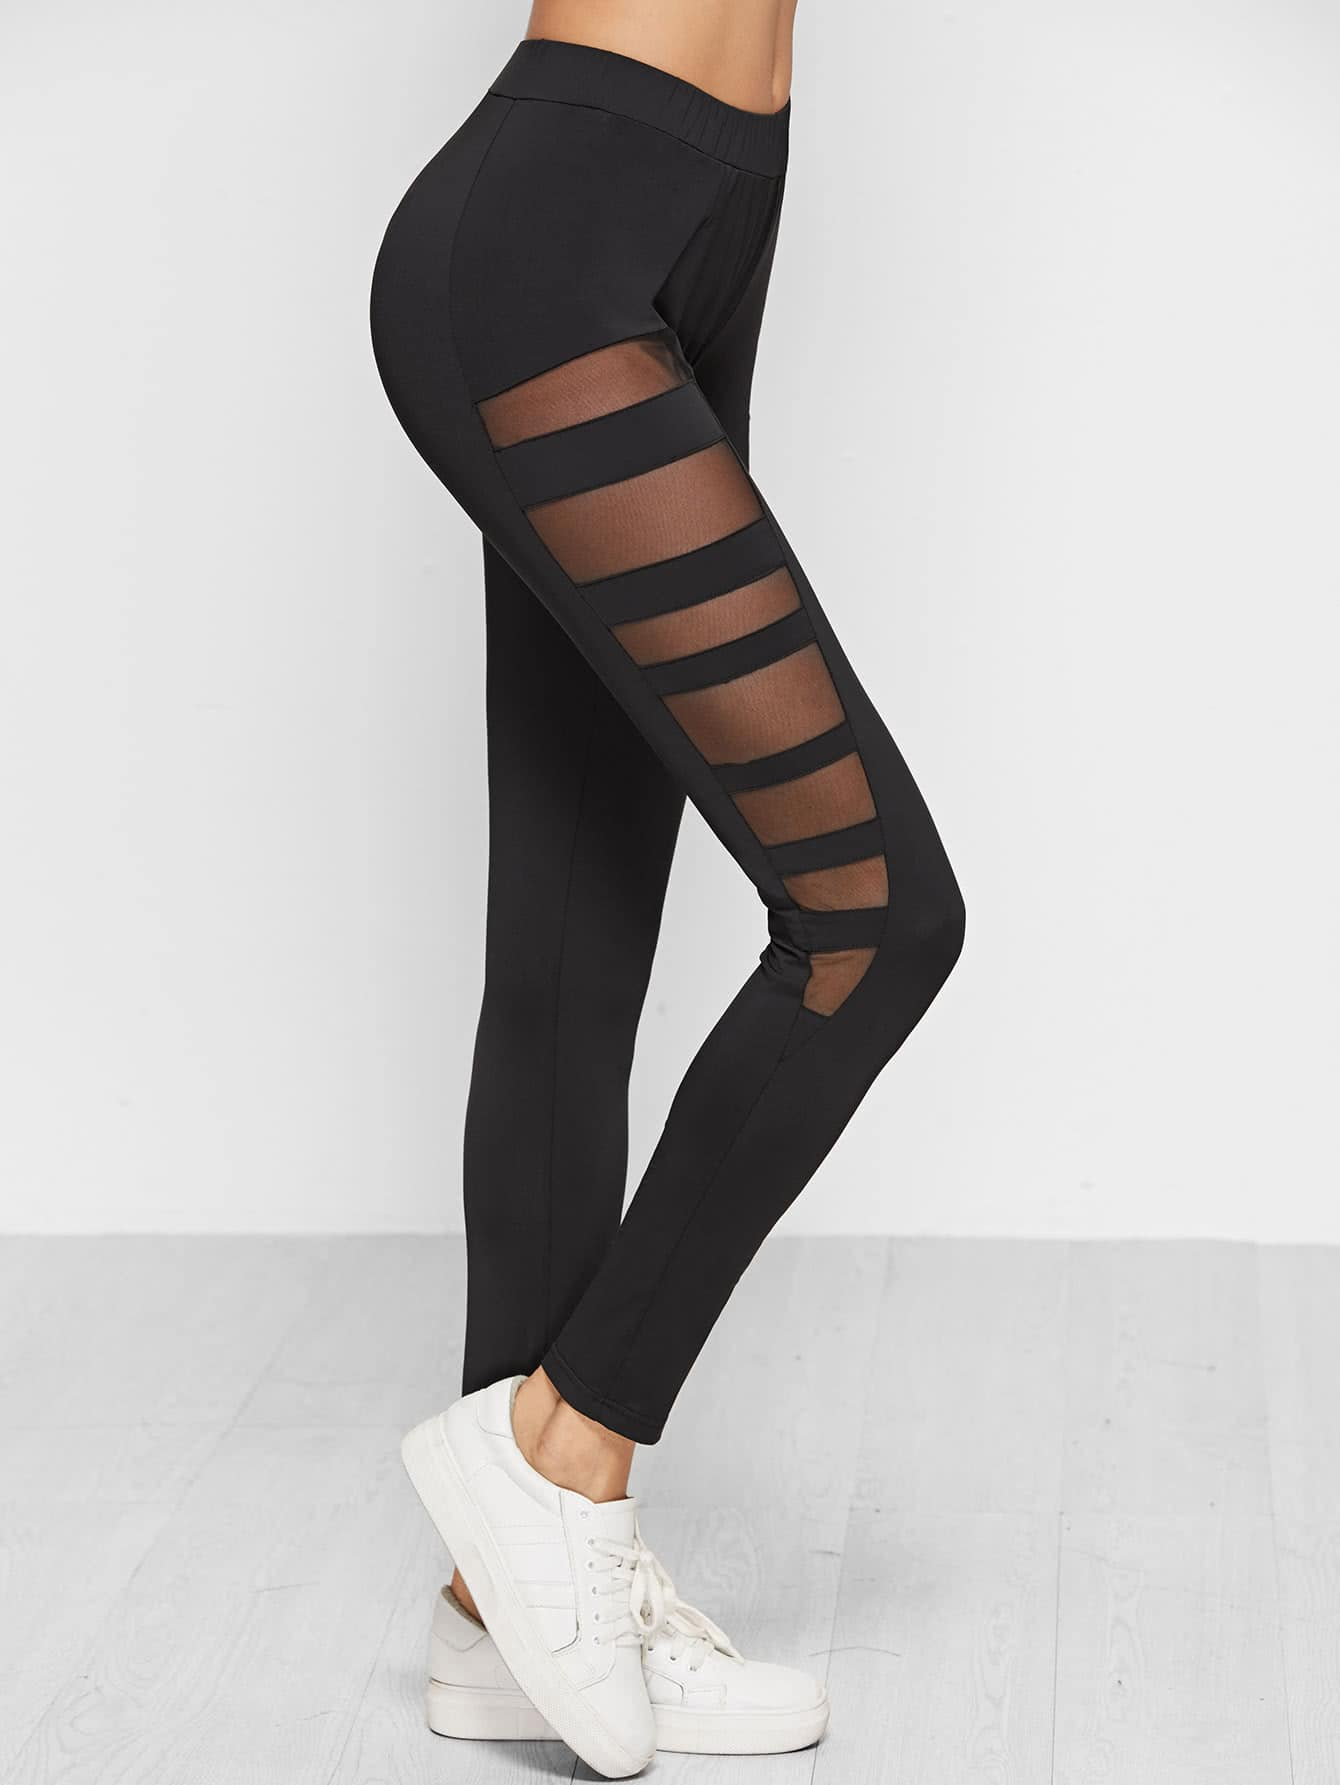 leggings161206703_2